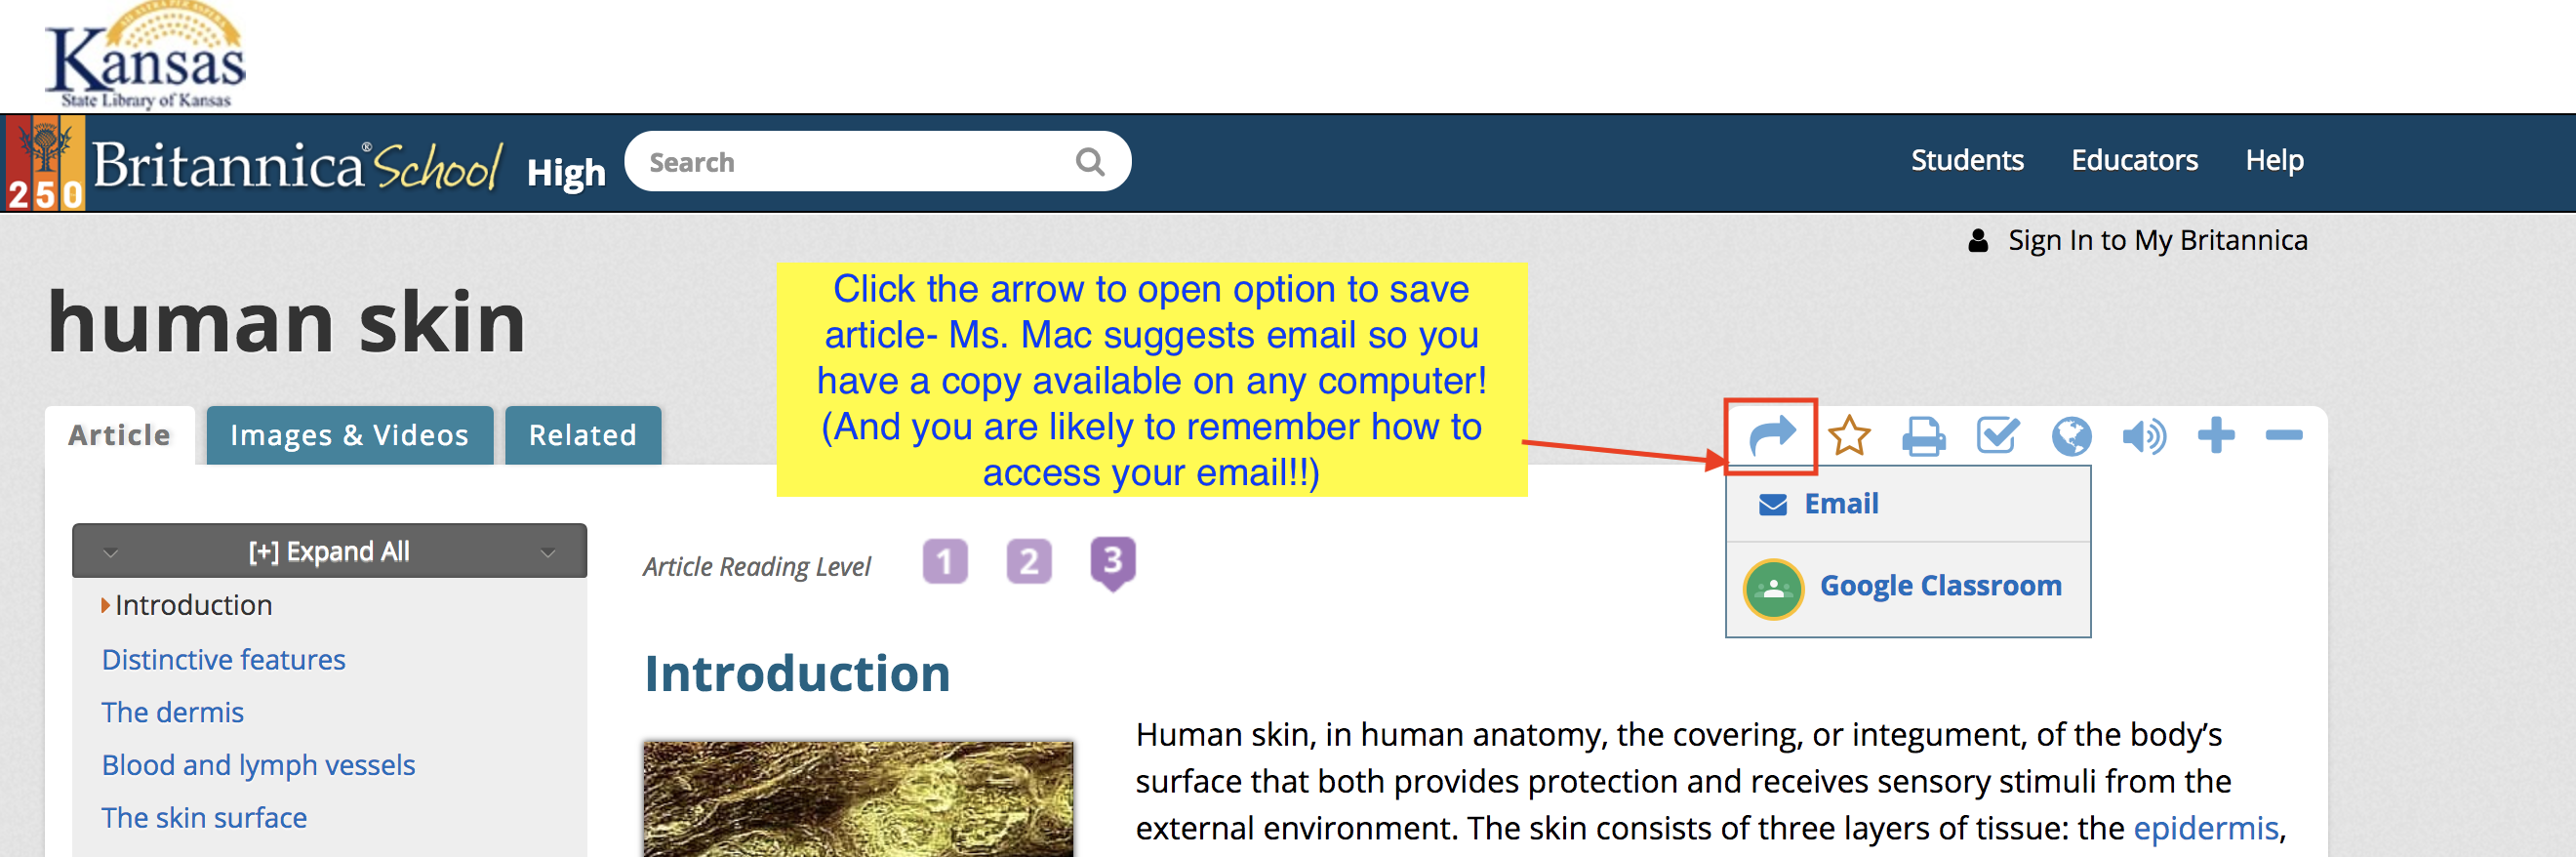 Screenshot highlighting the icon button for emailing articles.